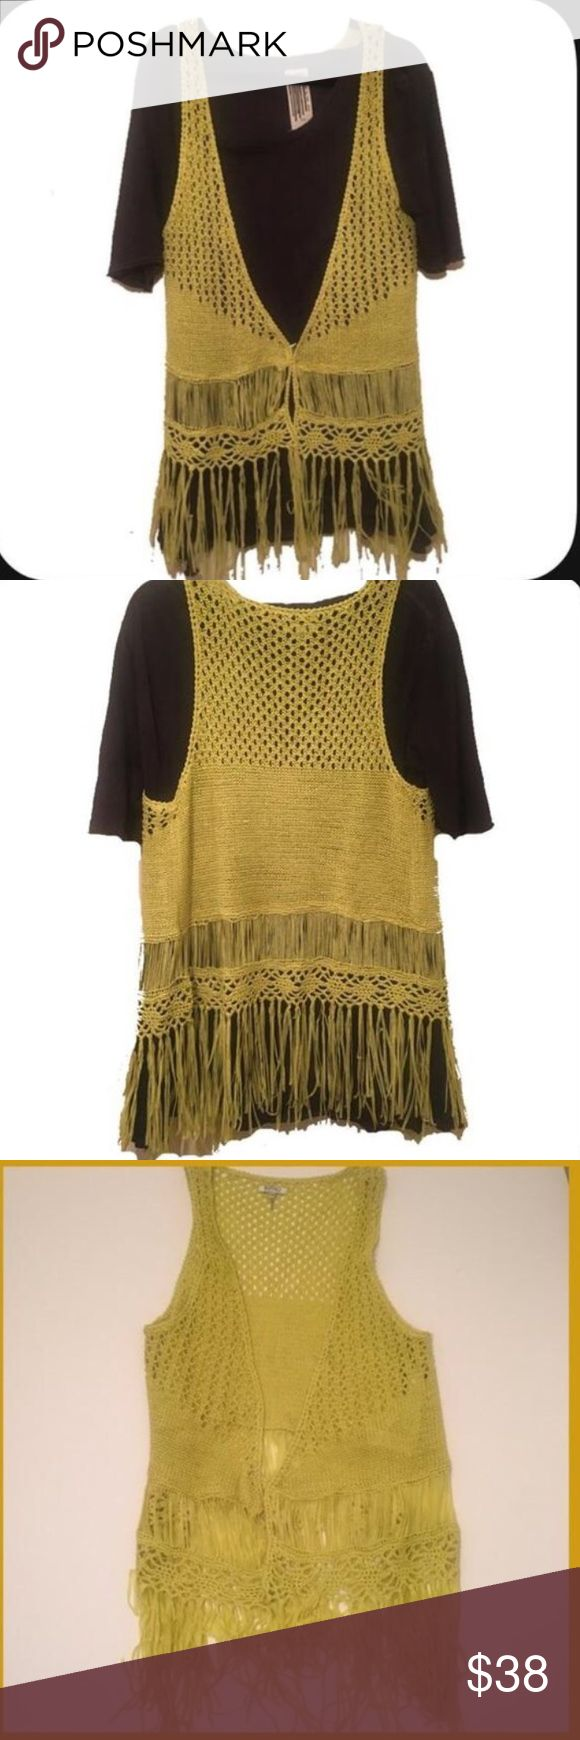 Crochet fringed vest• Bright yellow/ almost mustard but in a cool funky shade...V neck open vest•No closure tie• meant to wear open & layered as seen in pic• Shown on black Tshirt for effect• Buffalo David Bitton Tops